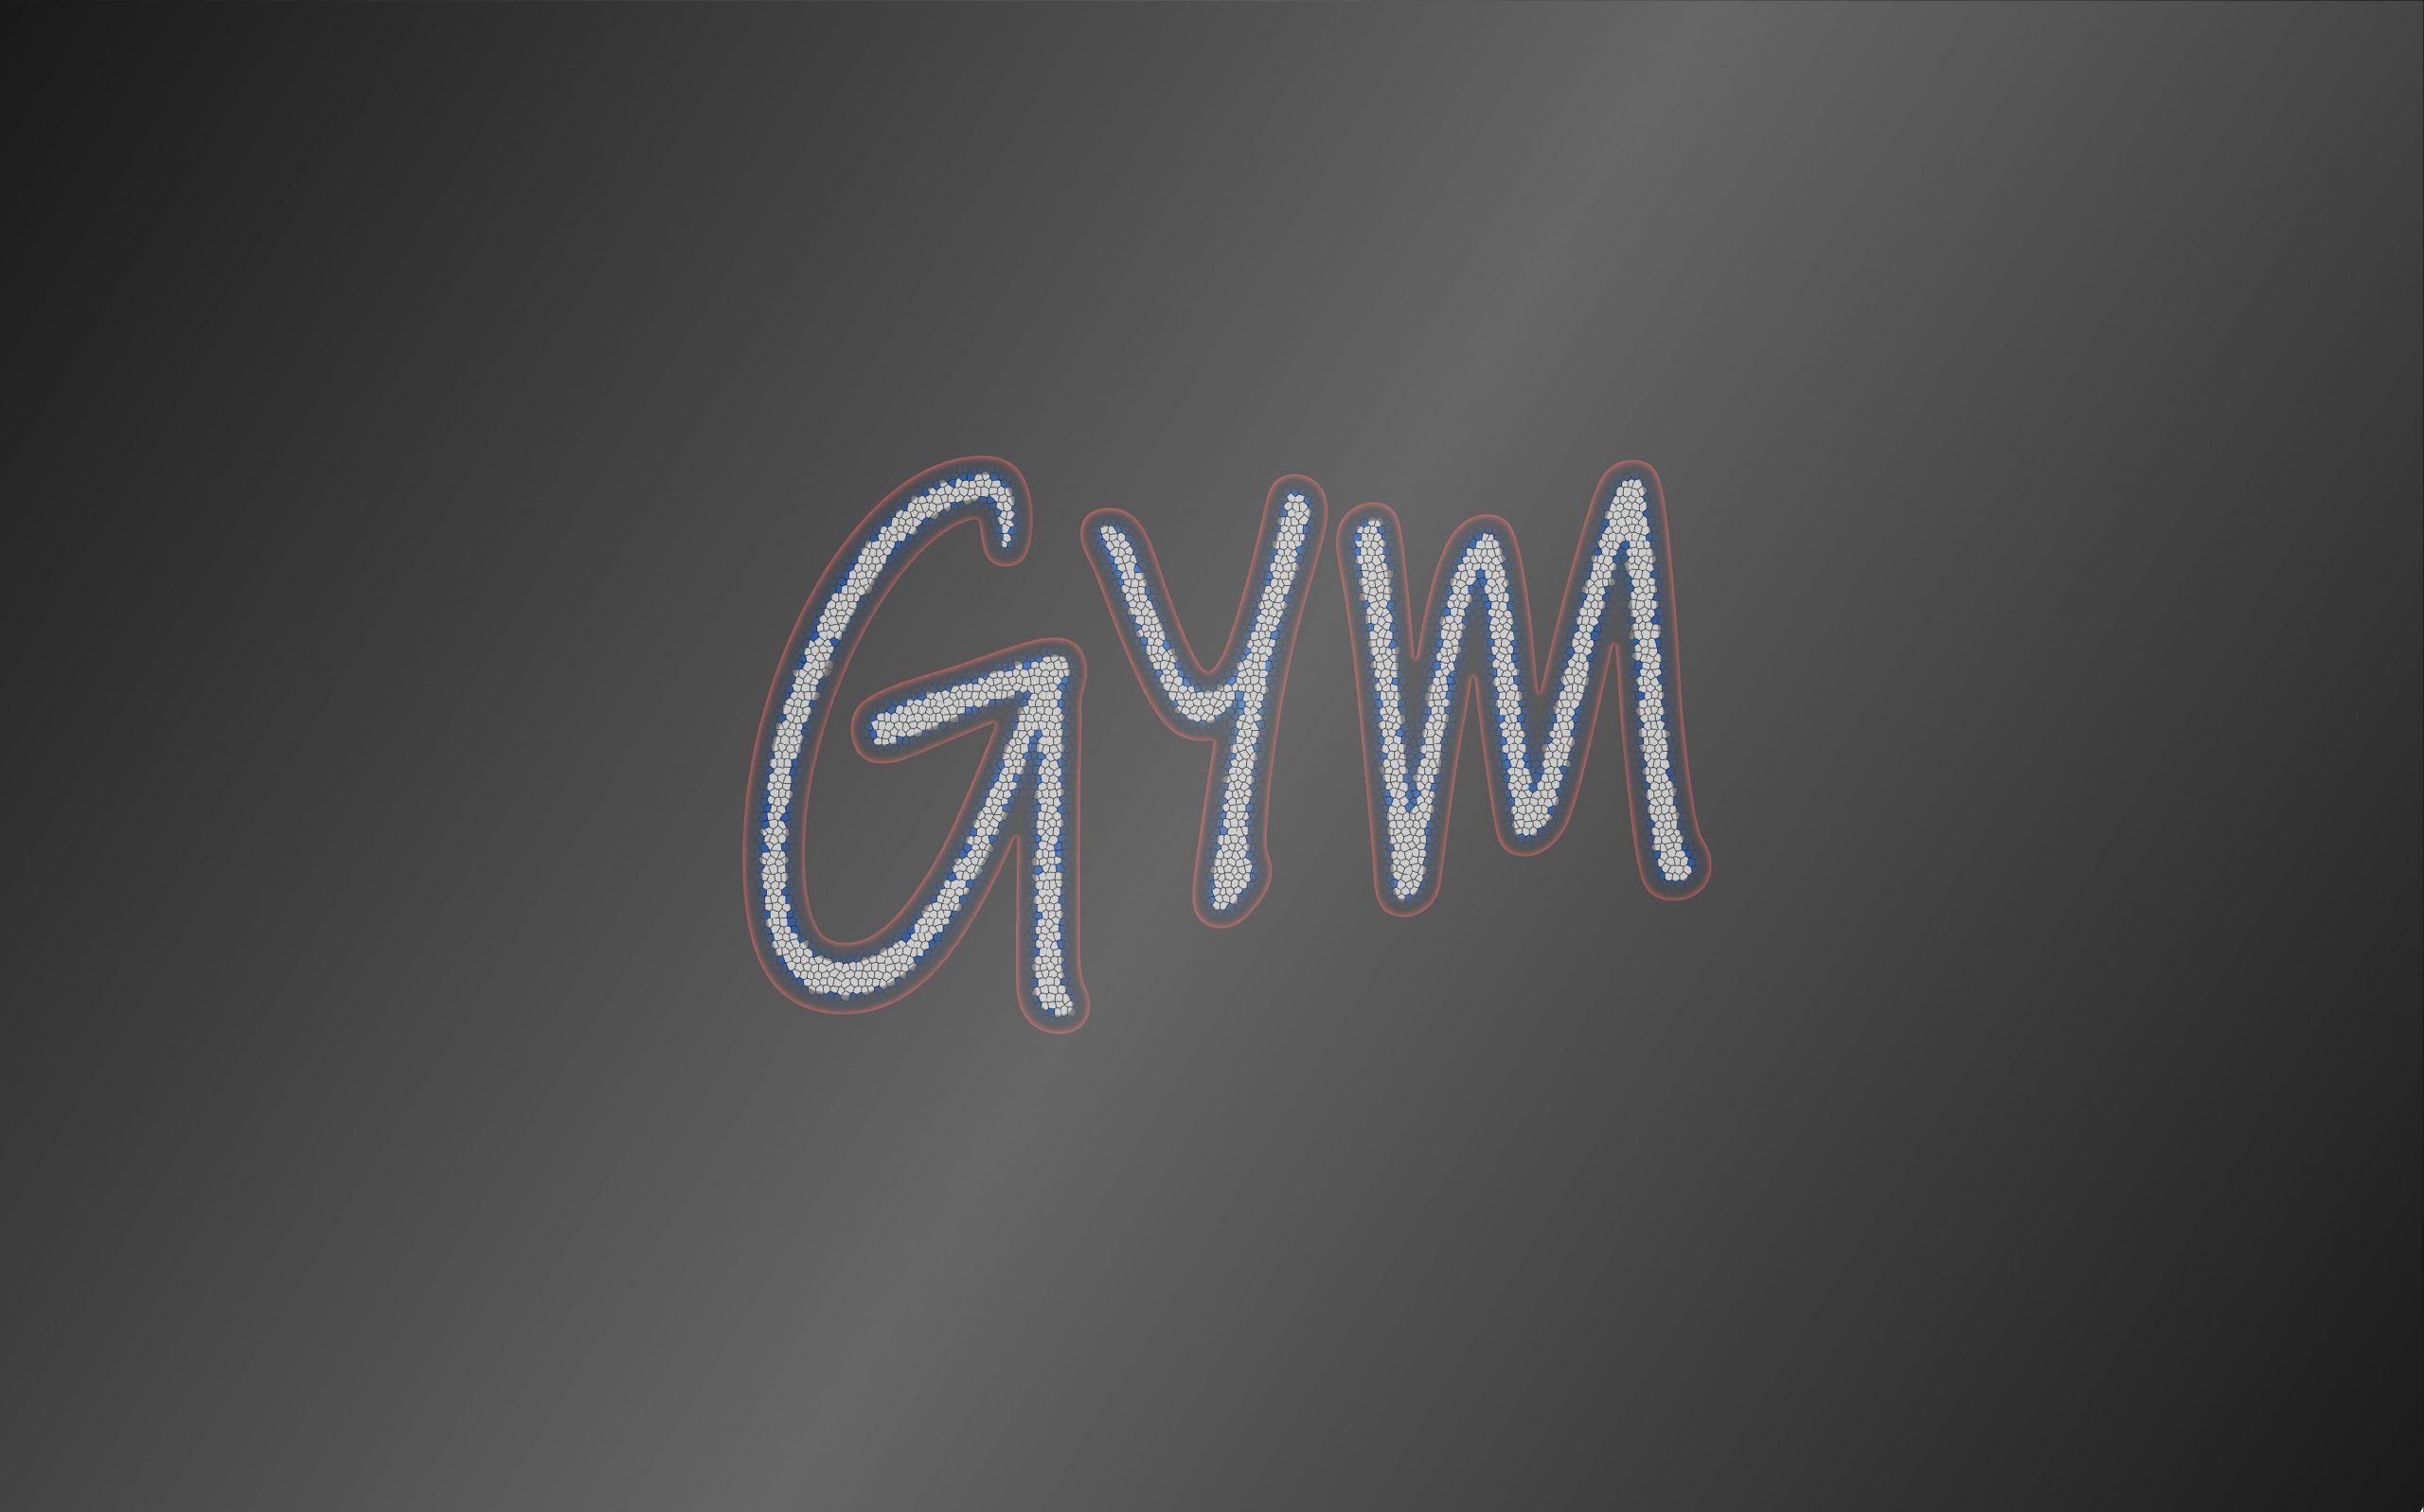 Gym word written on a surface